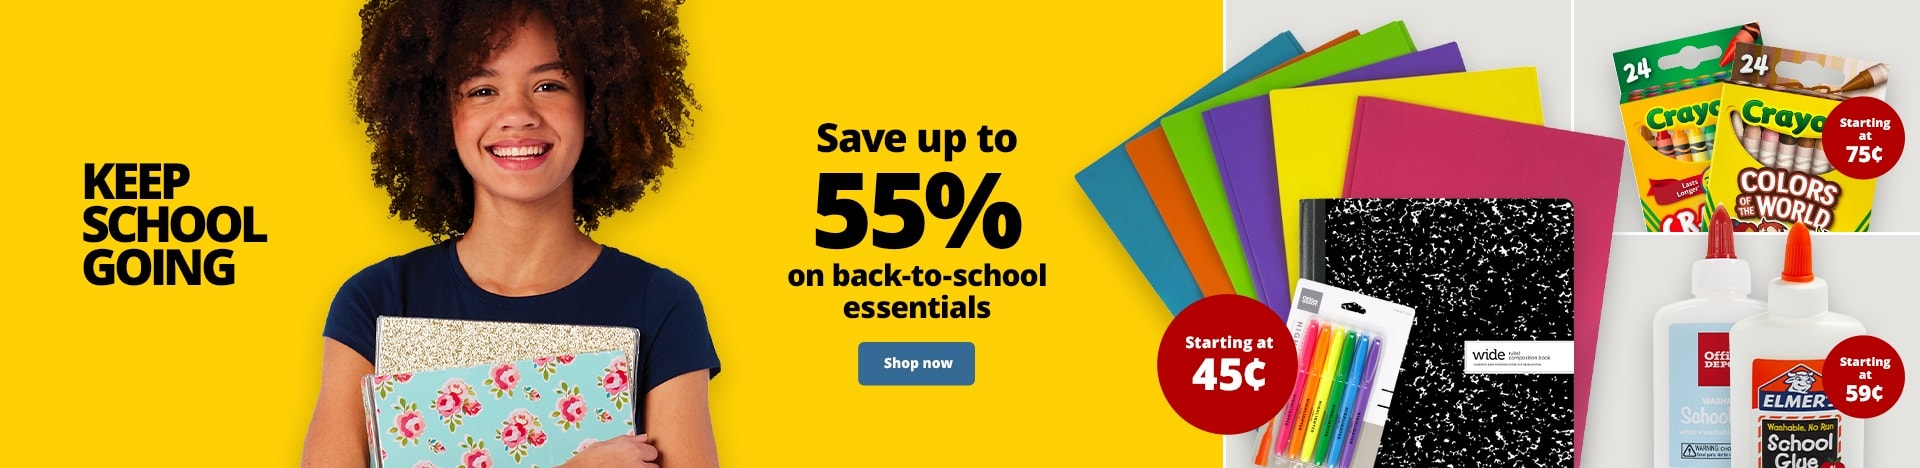 Keep School Going. Save up to 55% on back-to-school essentials